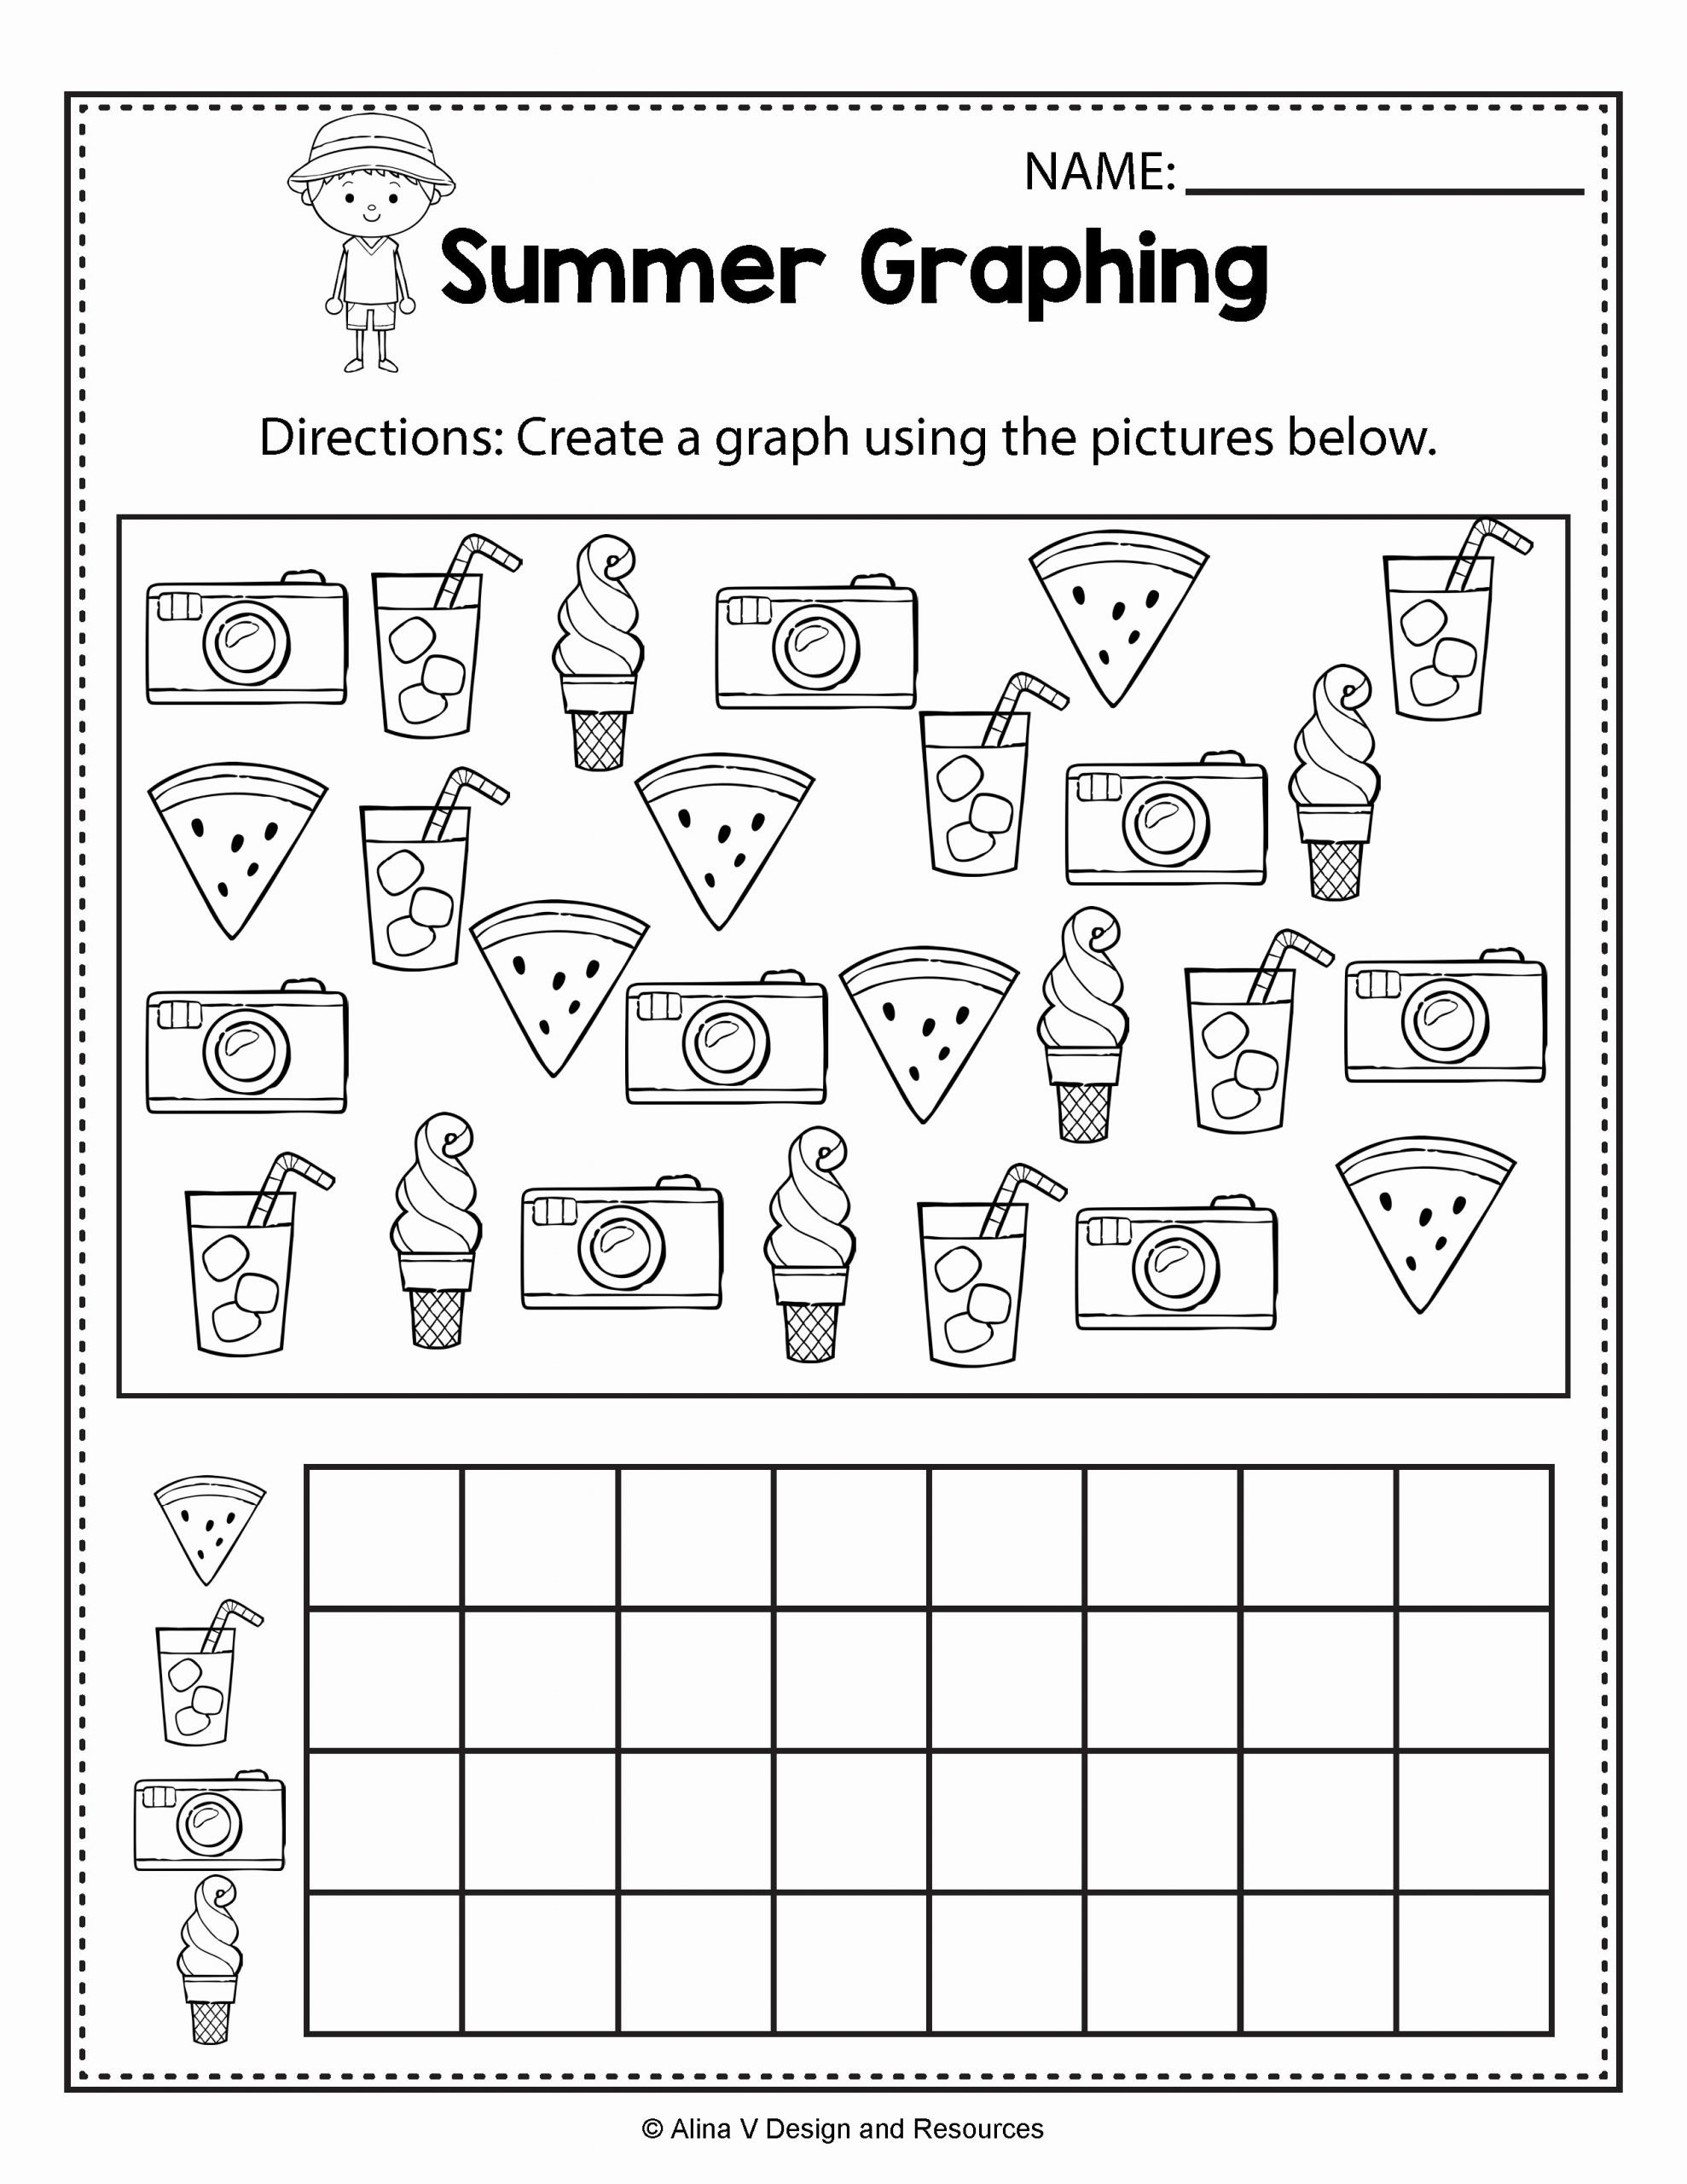 Summer Activities Worksheets for Preschoolers Beautiful Summer Worksheets for Kindergarten